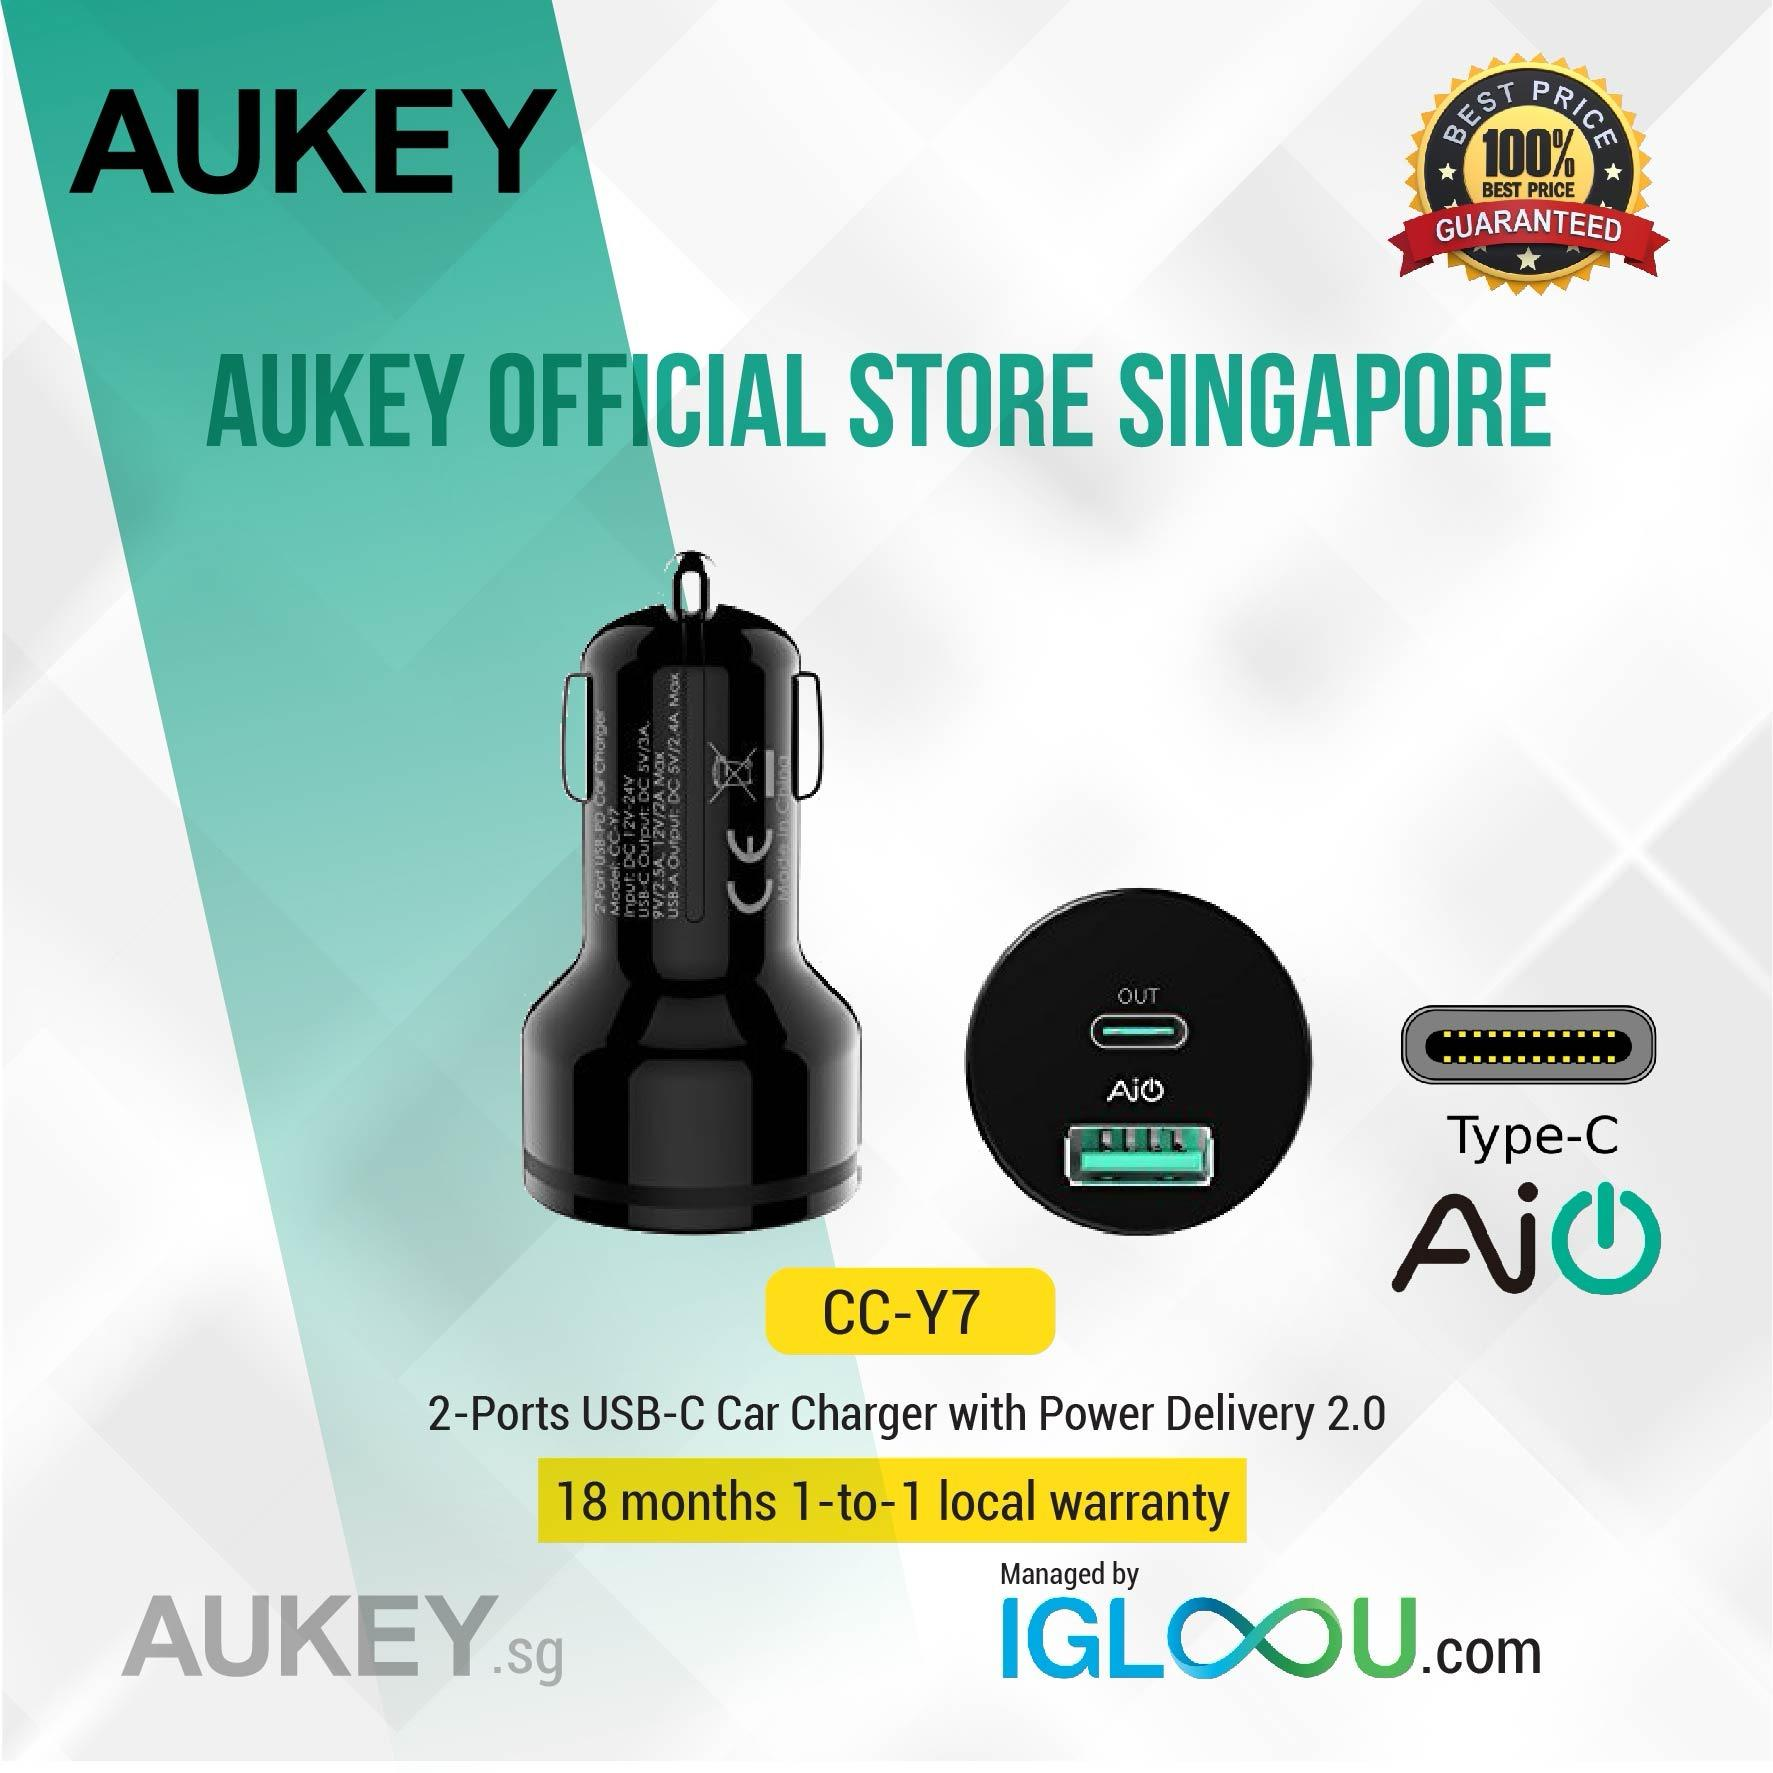 Buy Aukey Mobile Accessories Lazada Cb Cd5 Cable 1m Usb C To Quick Charge 30 Braided Nylon Car Charger With Power Delivery Dual Port 36w Output For Pixel